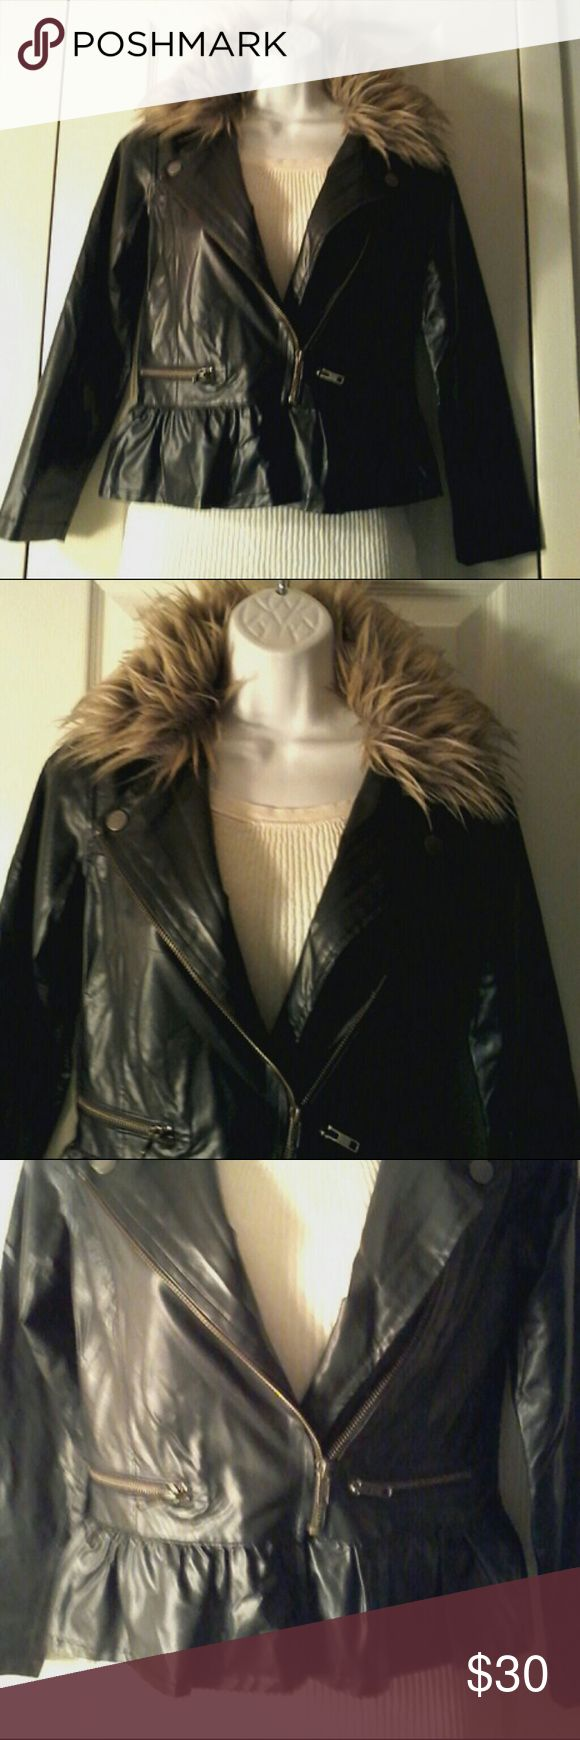 Jessica Simpson Jacket Black jacket with faux fu r removable collar.  Size large. Jessica Simpson Jackets & Coats